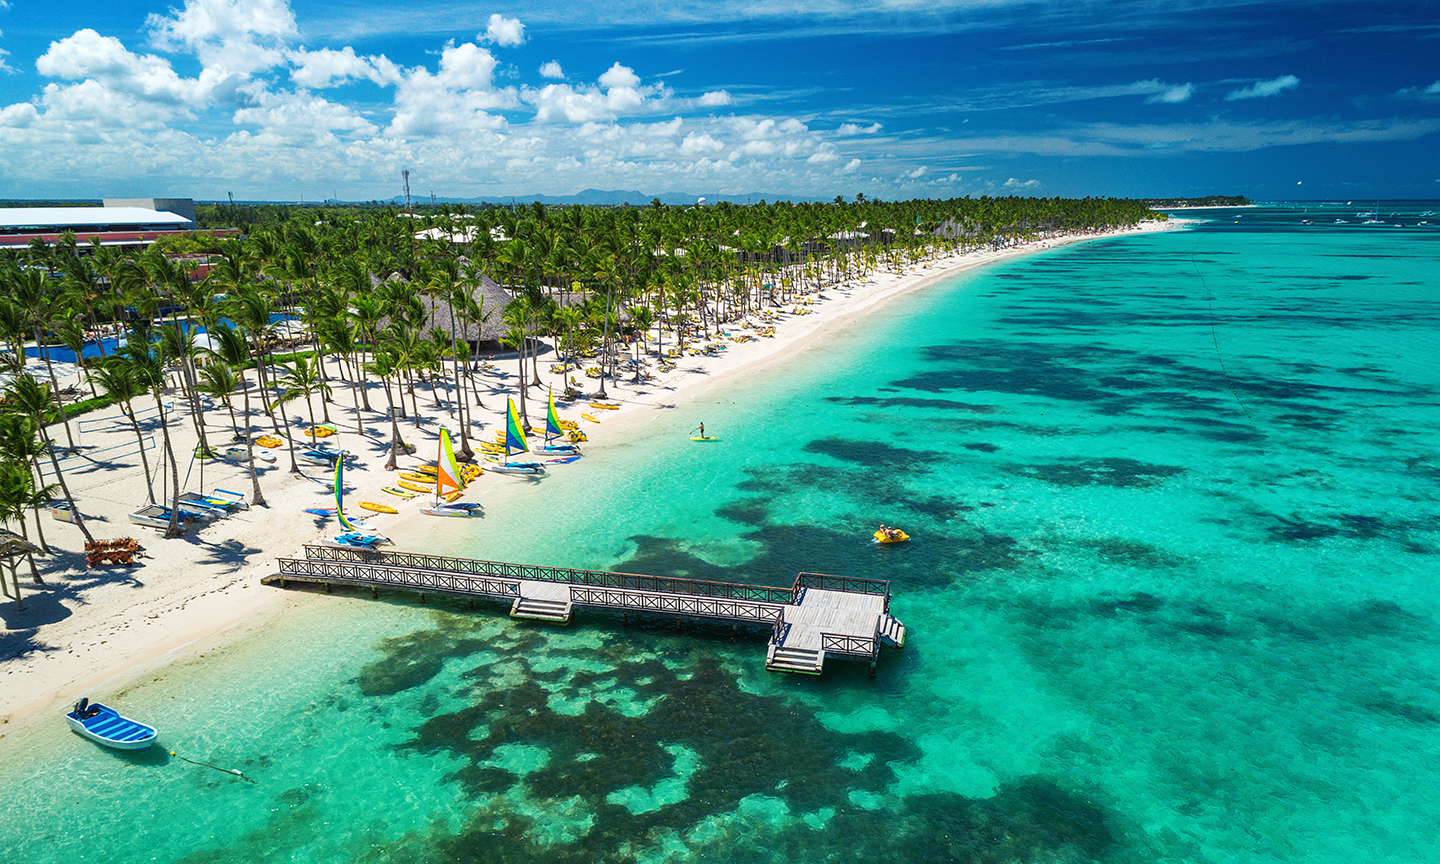 A view from above of the beach at Punta Cana, Dominican Republic, with palm trees and a small pier going into the water.